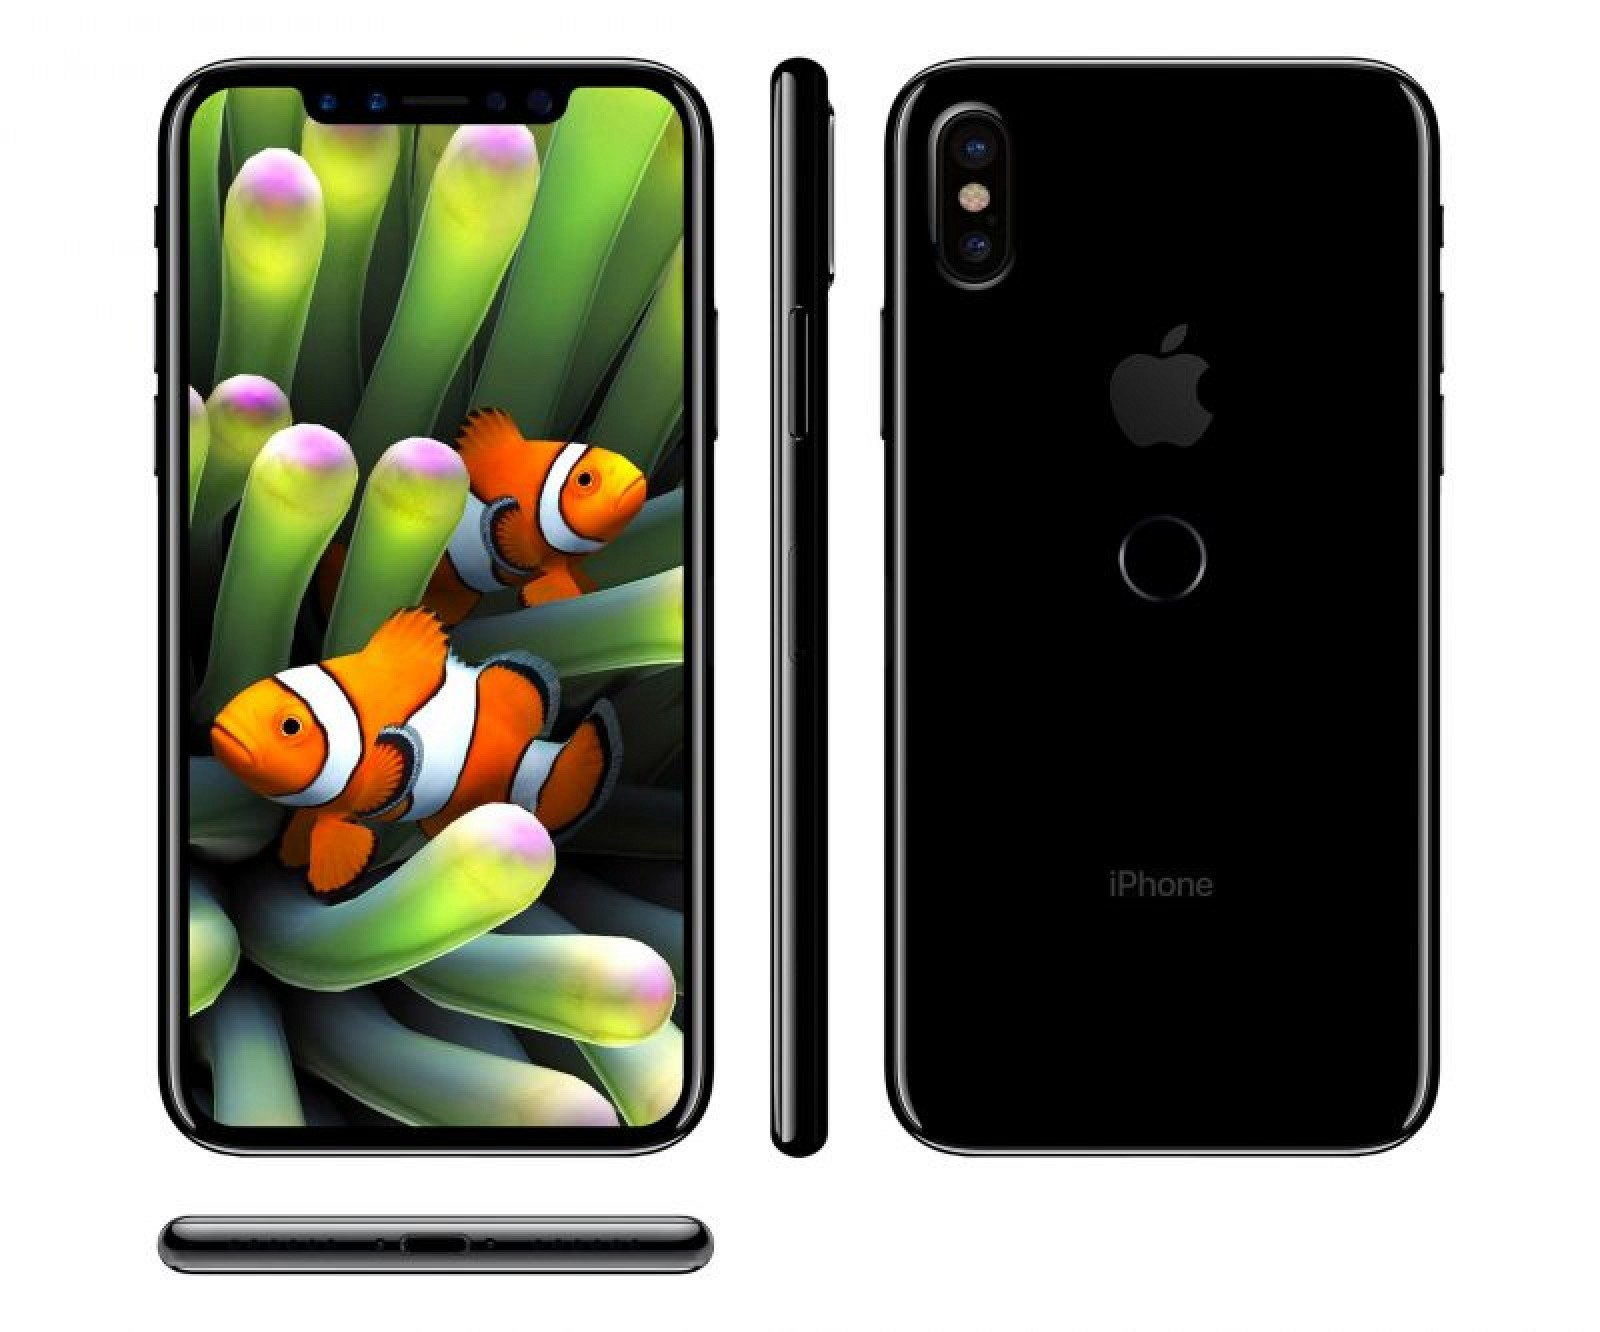 apple-iphone-8-geskin-800x666-desain.jpg